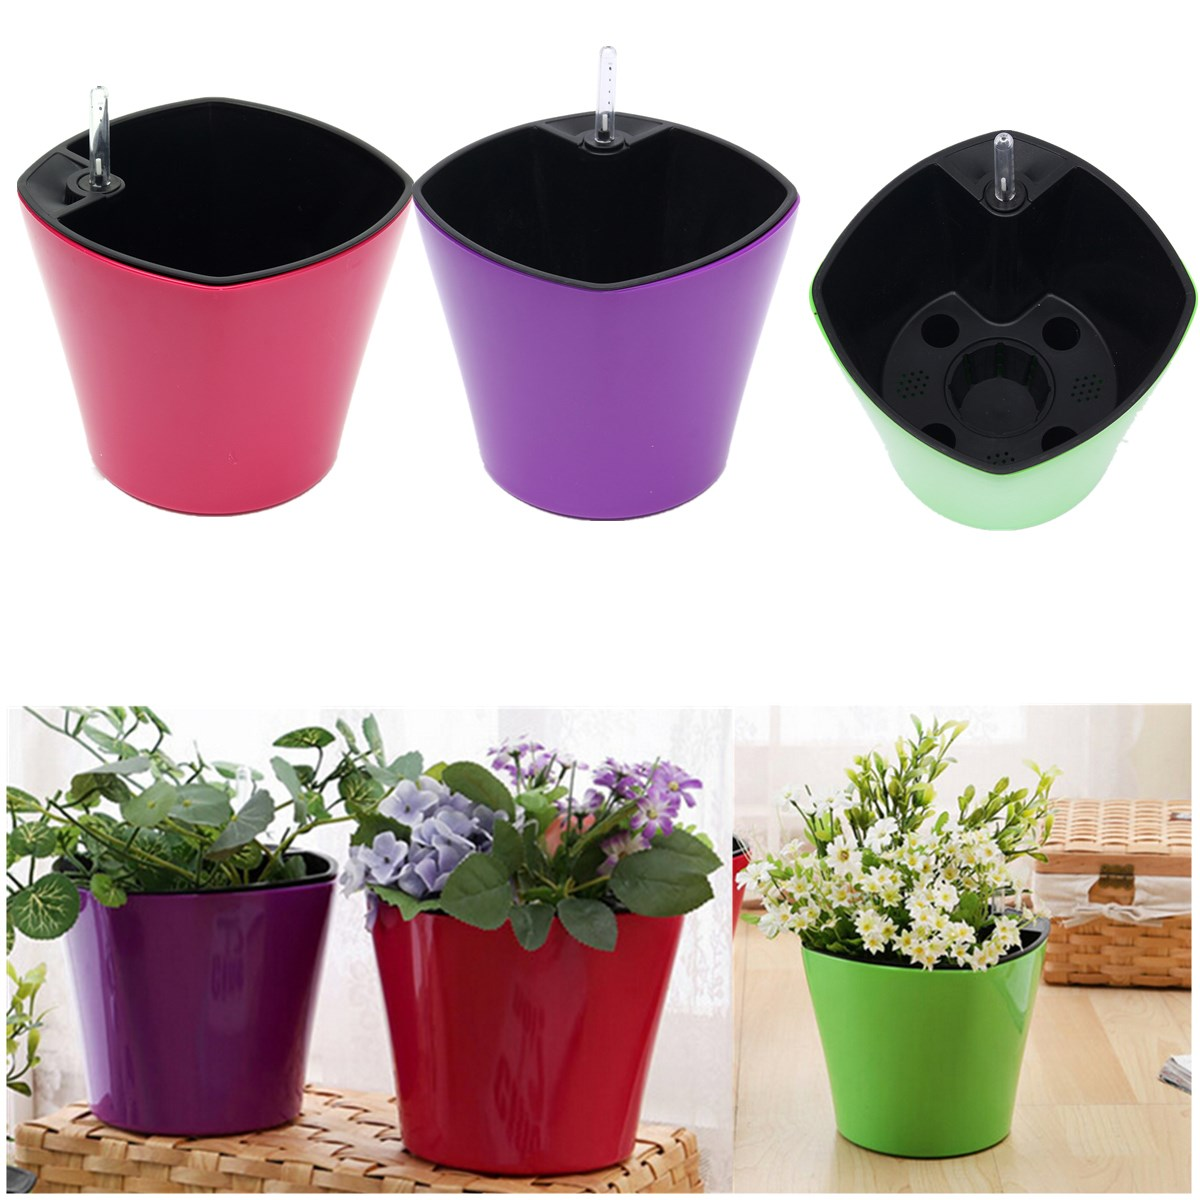 office flower pots. aliexpresscom buy automatic self watering drip plant pot system holder garden office home flower pots planter household greening crafts from